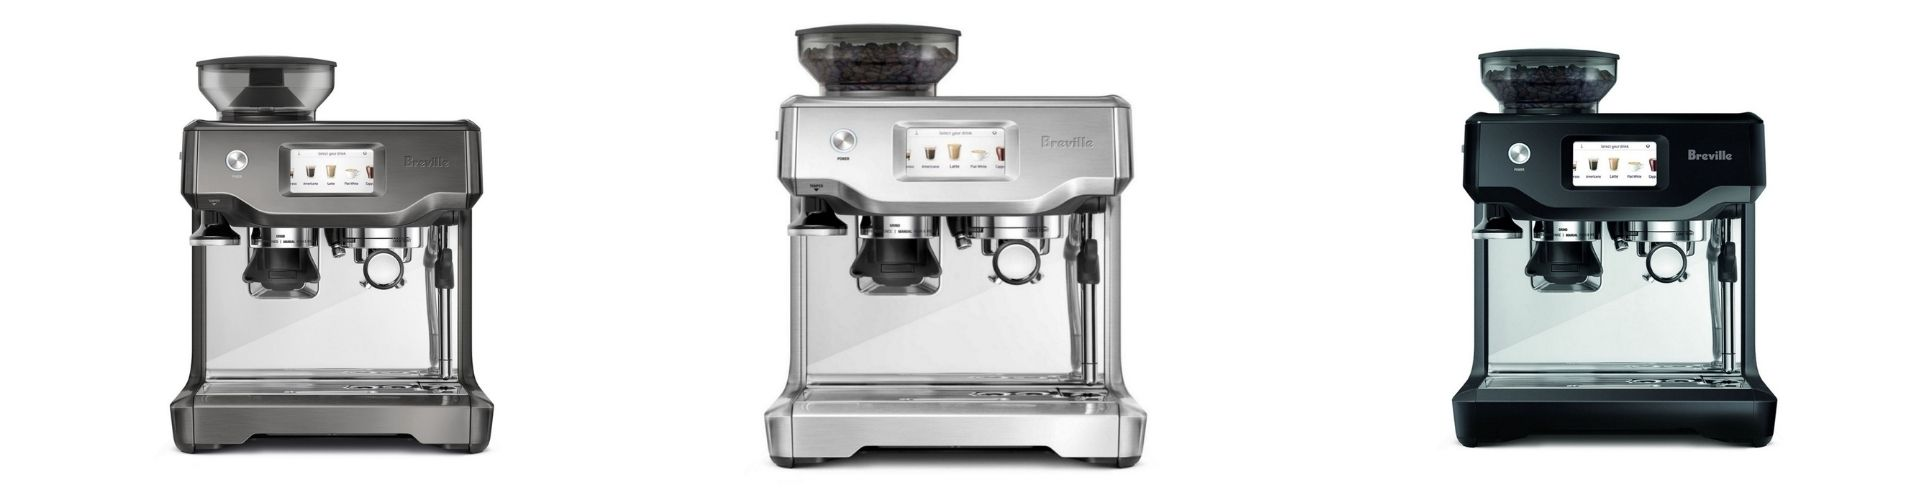 Breville Barista Touch